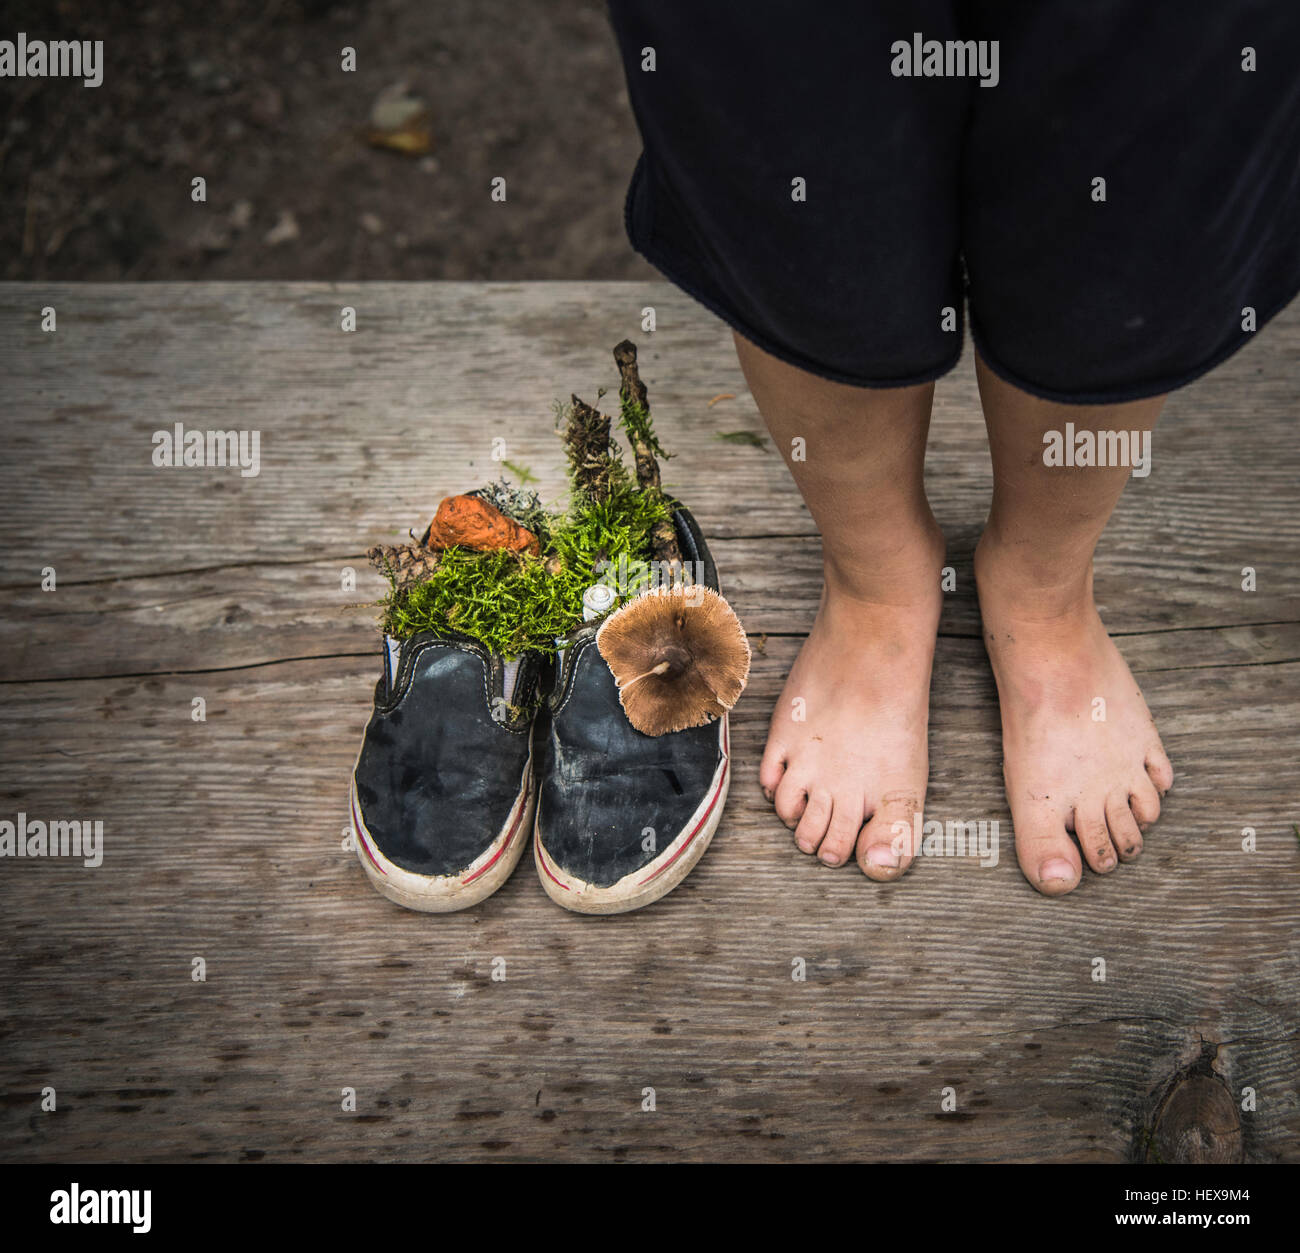 Bare feet of boy next to shoes filled with nature - Stock Image